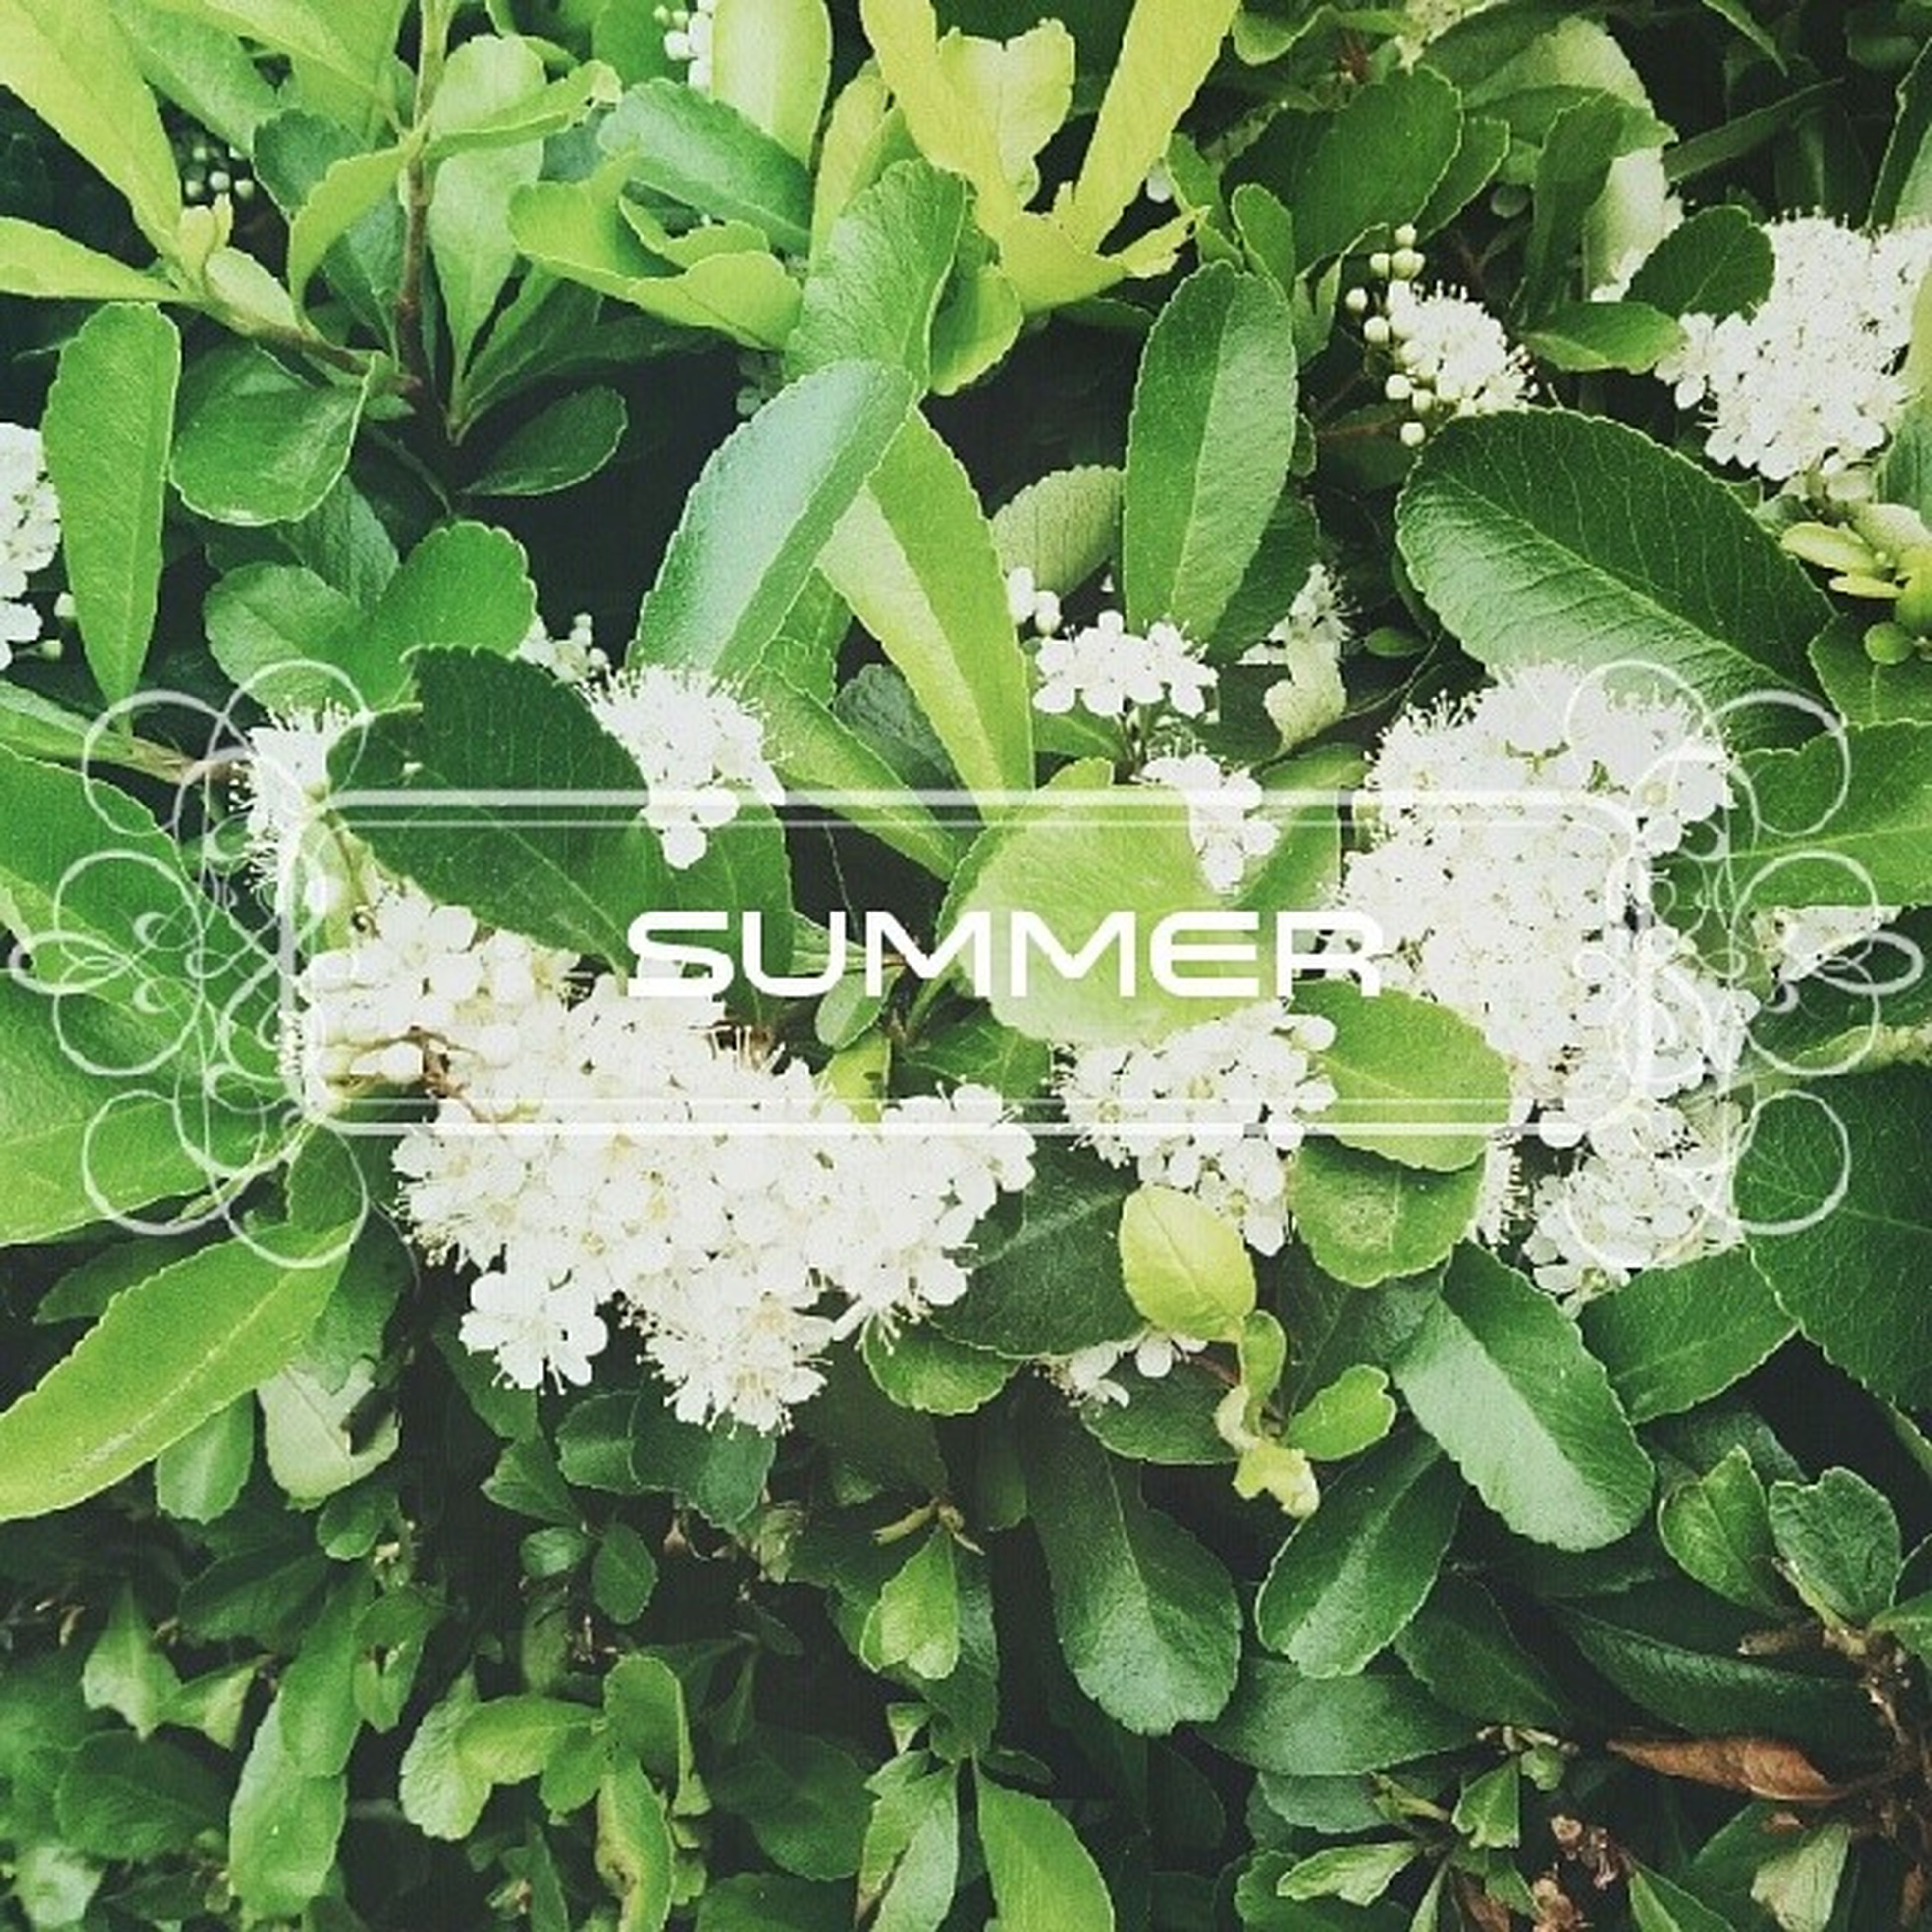 leaf, growth, green color, plant, freshness, flower, nature, high angle view, fragility, beauty in nature, white color, full frame, growing, green, backgrounds, close-up, day, outdoors, no people, leaves